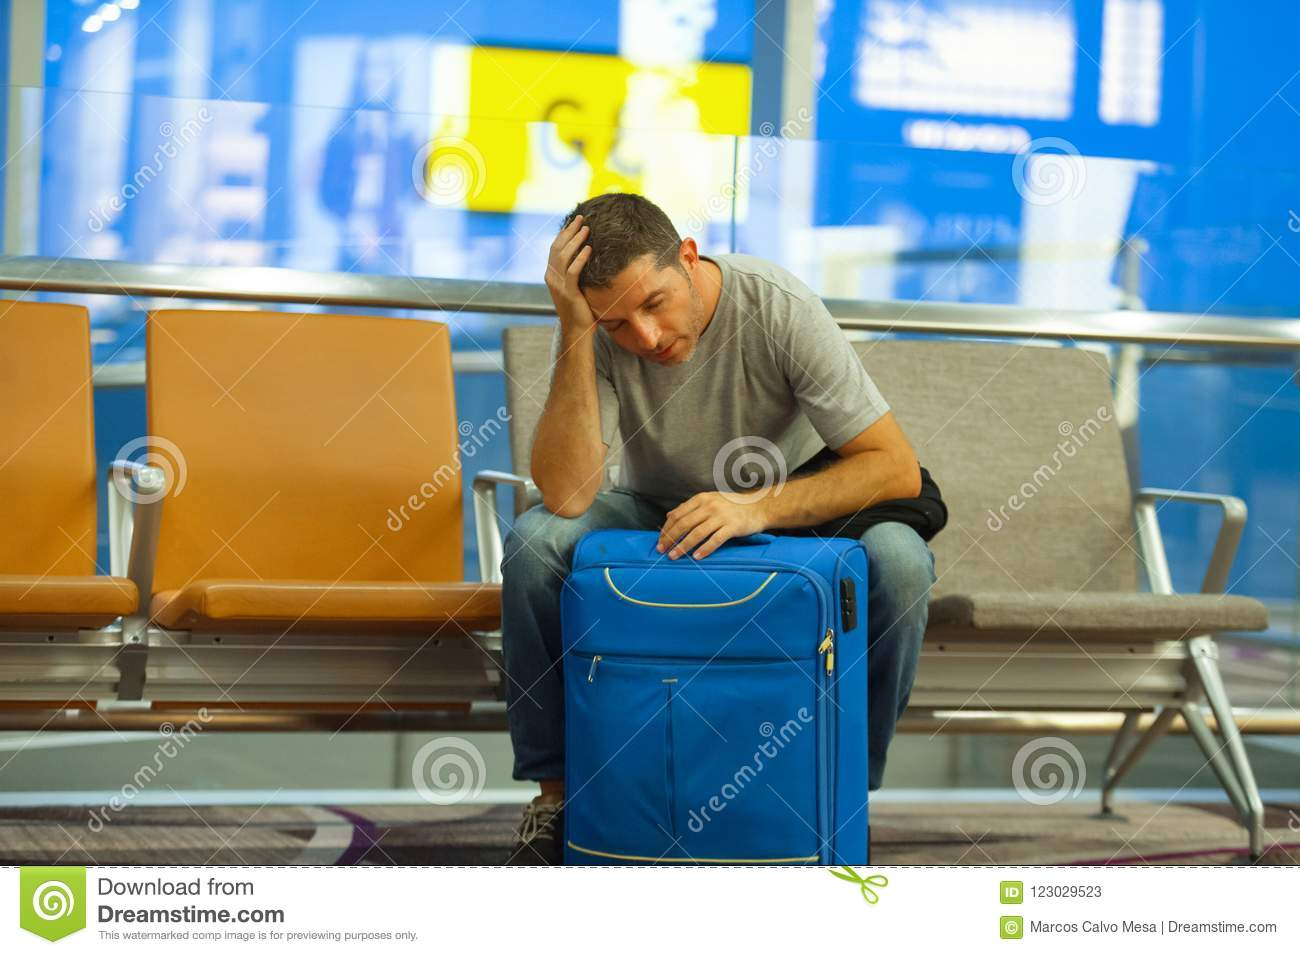 Stressed Out Students How Boarding >> Young Tired Tourist Man In Airport With Suitcase Sitting Worried And